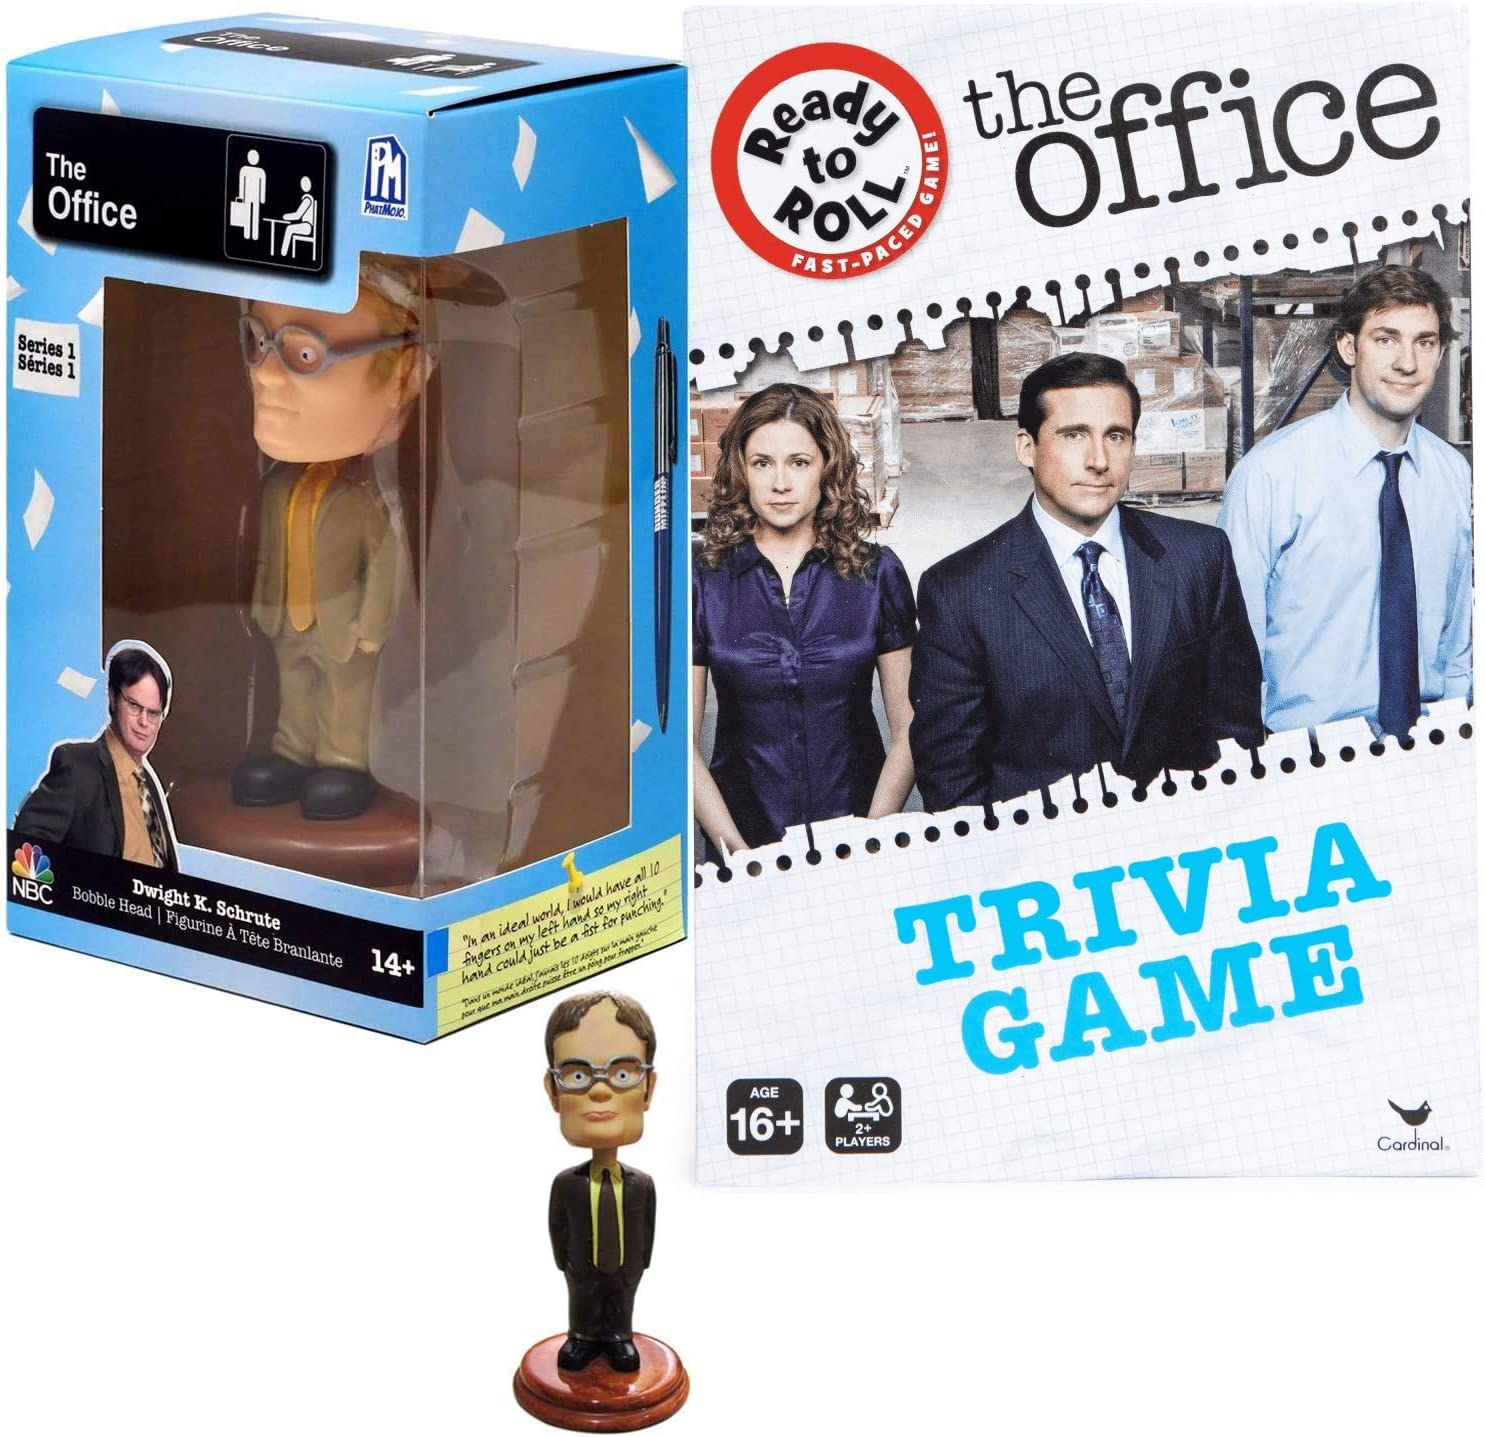 Dwight Figure Assistant Regional Manager Collectible Bundled with NBC Dunder-Mifflin Bobblehead + The Office Series Trivia Game 2 Items